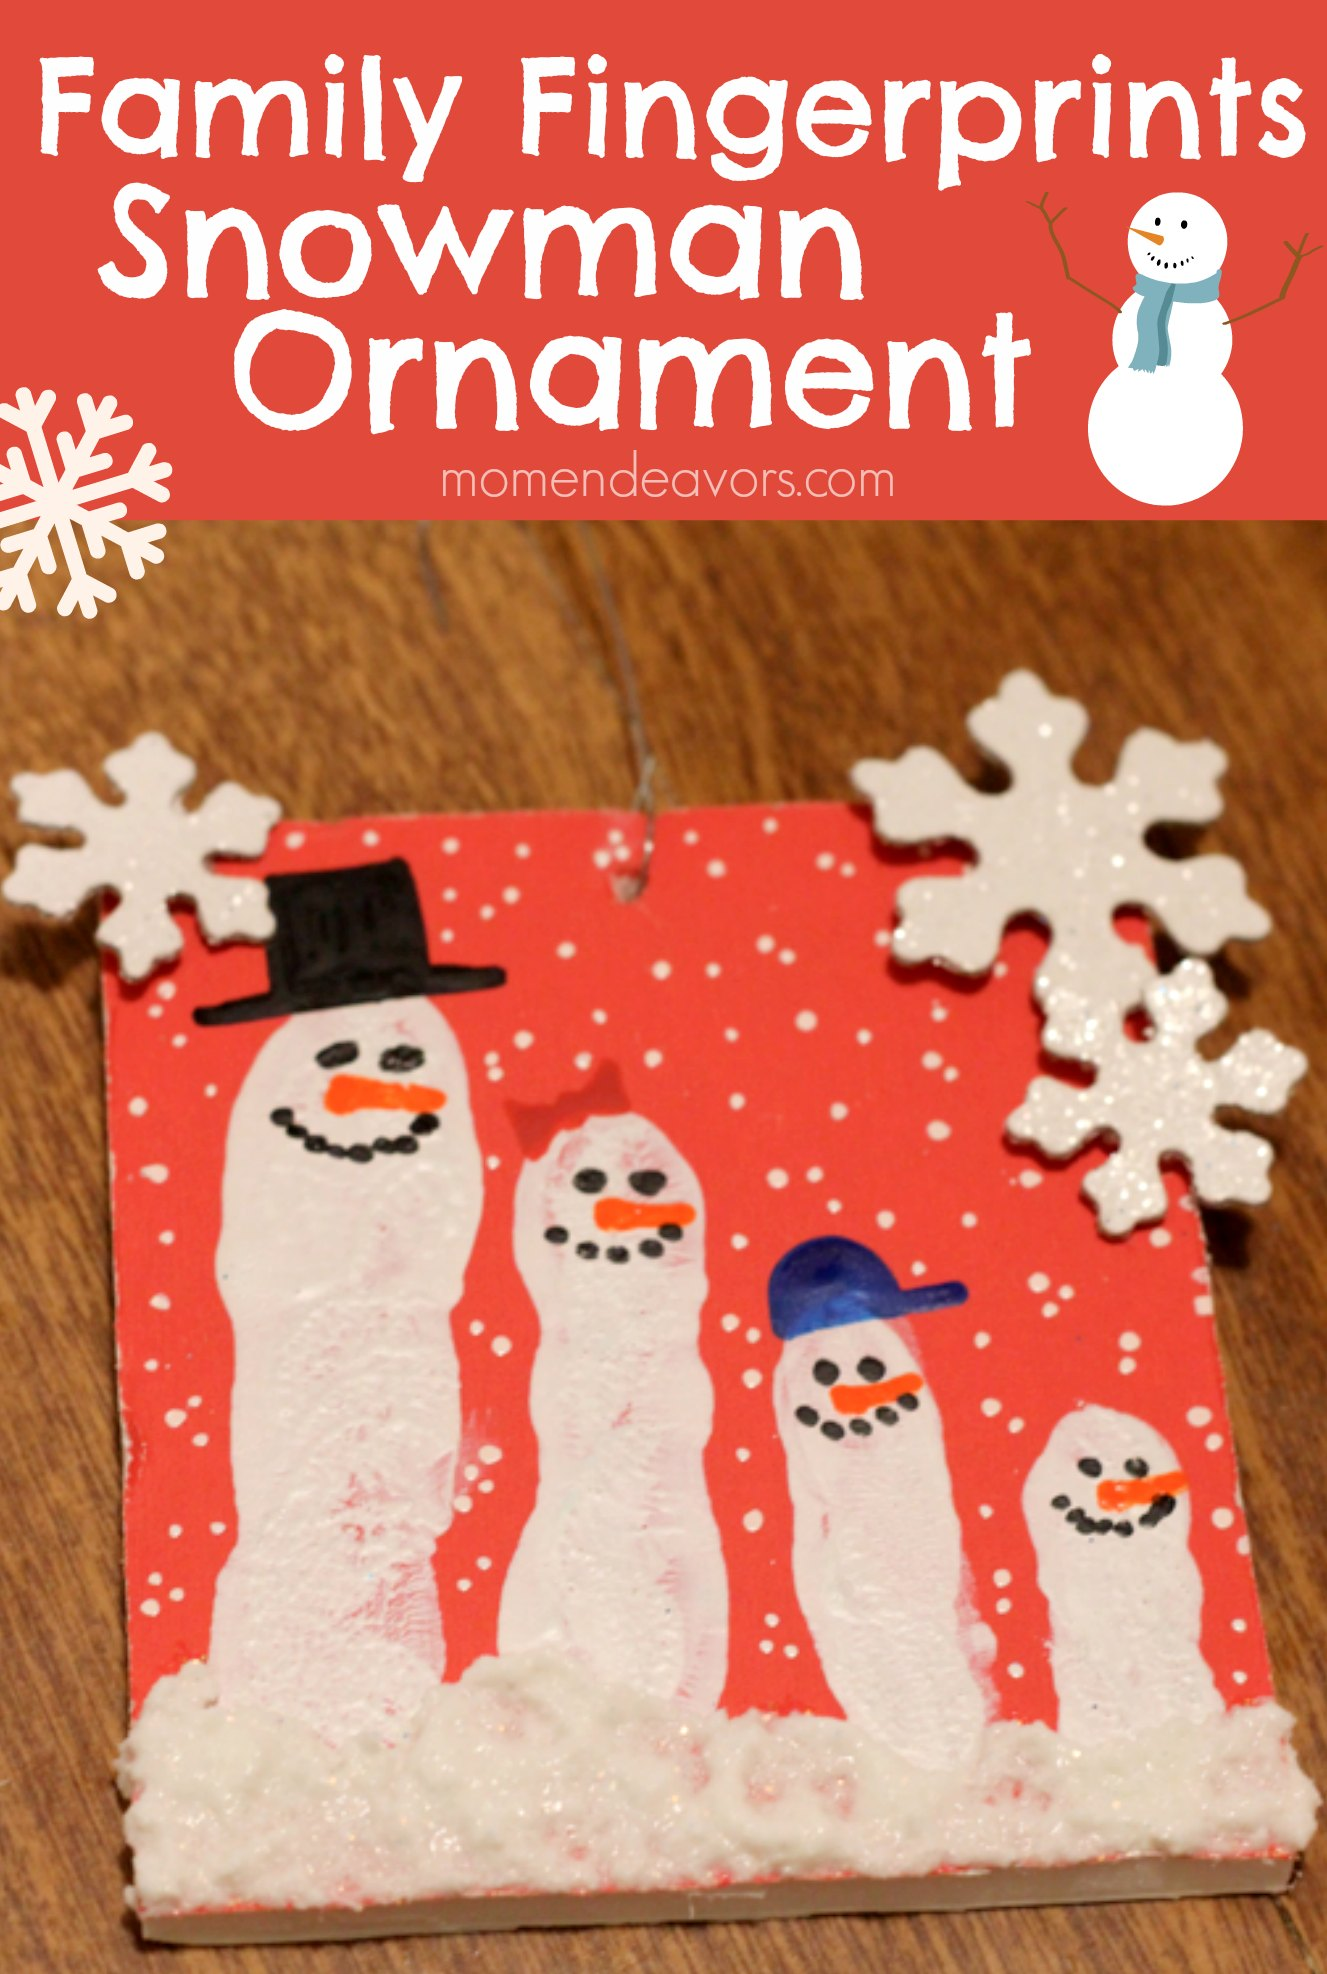 Family Fingerprints Snowman Ornaments